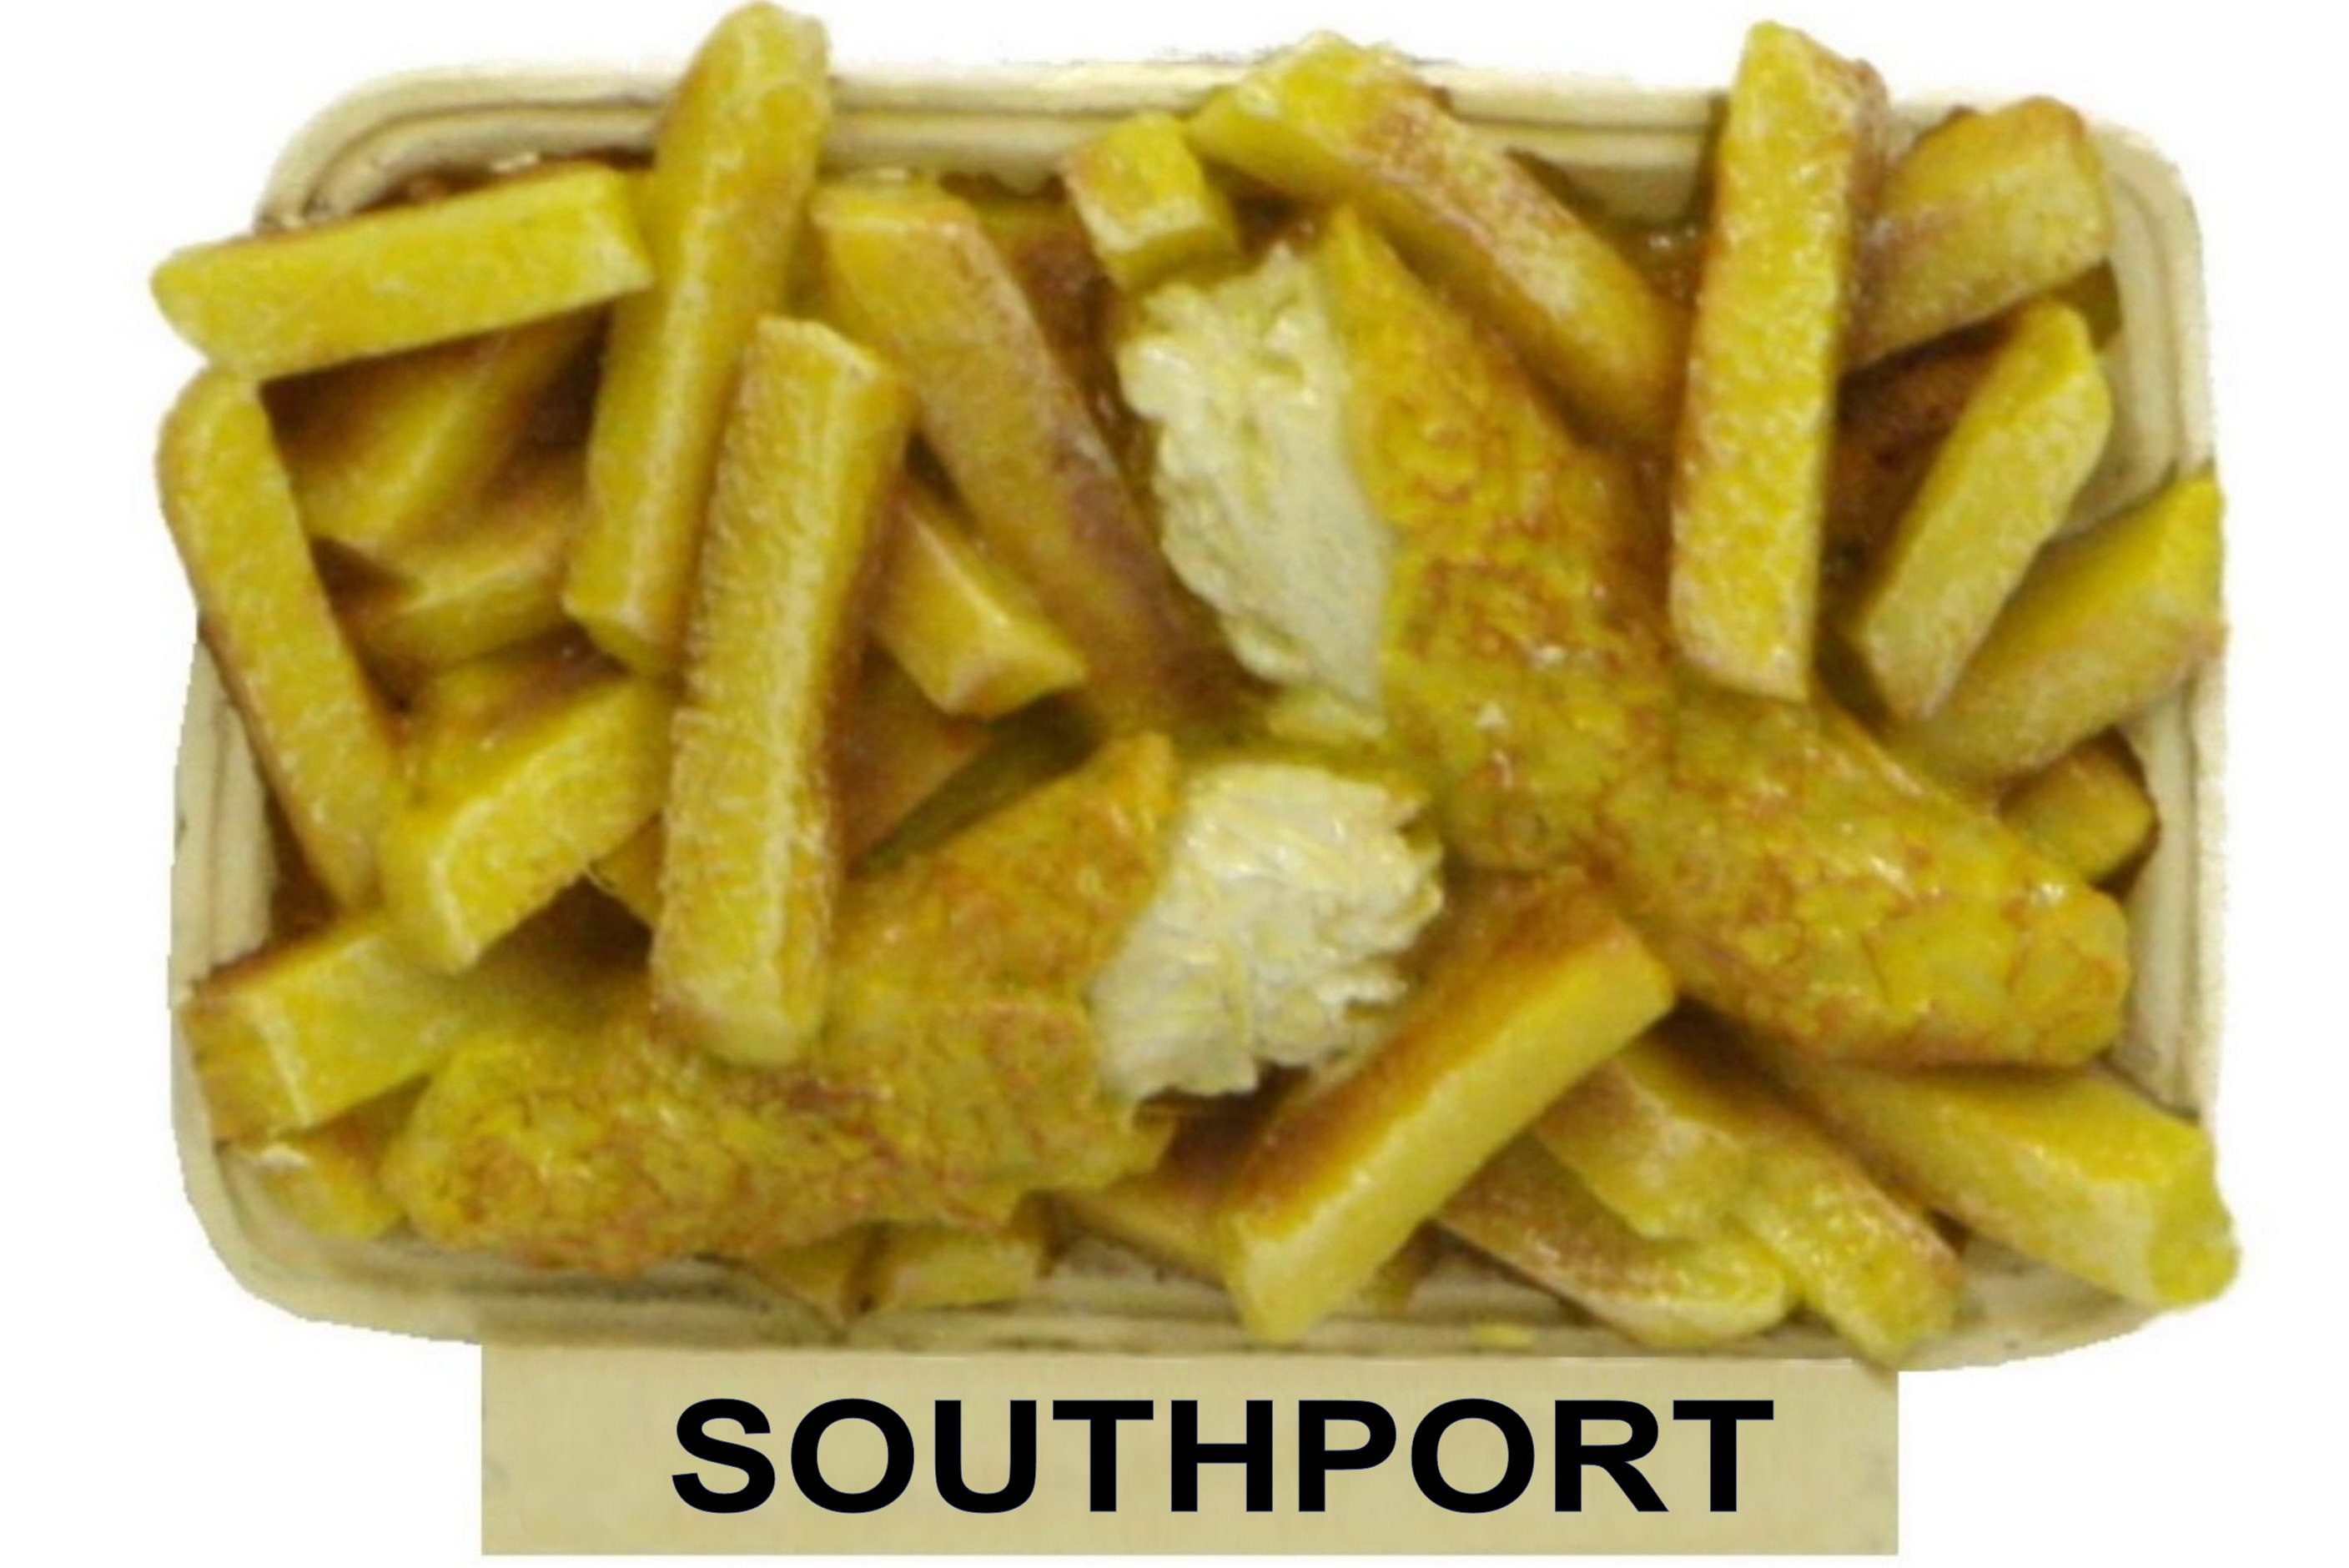 Southport Fish & Chips Resin Magnet